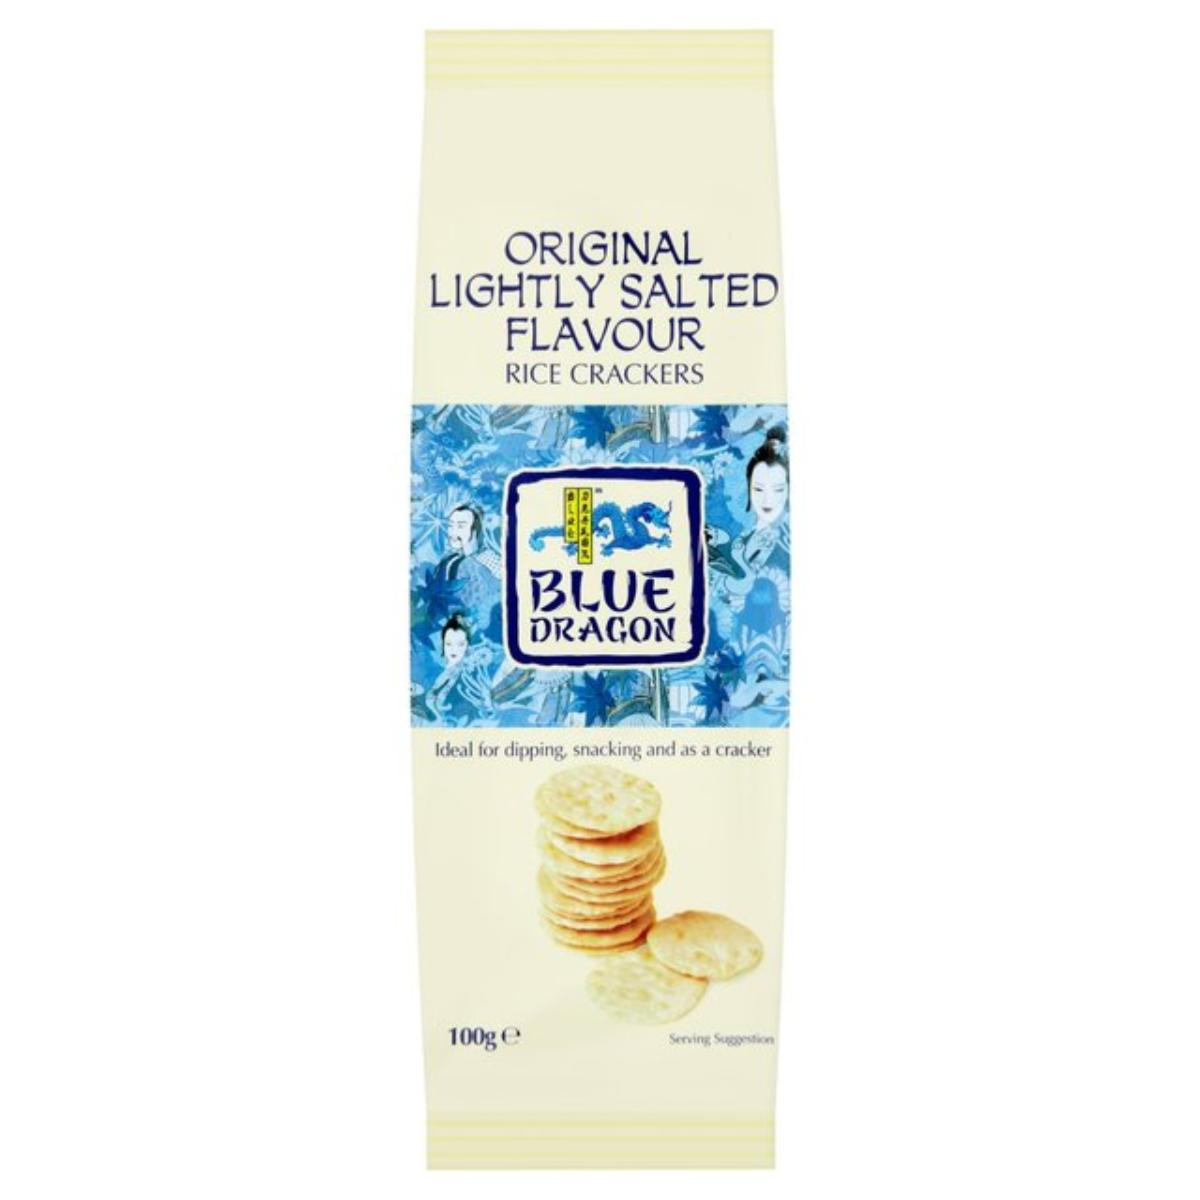 Blue Dragon Original Slightly Salted Flavour  Rice Crackers